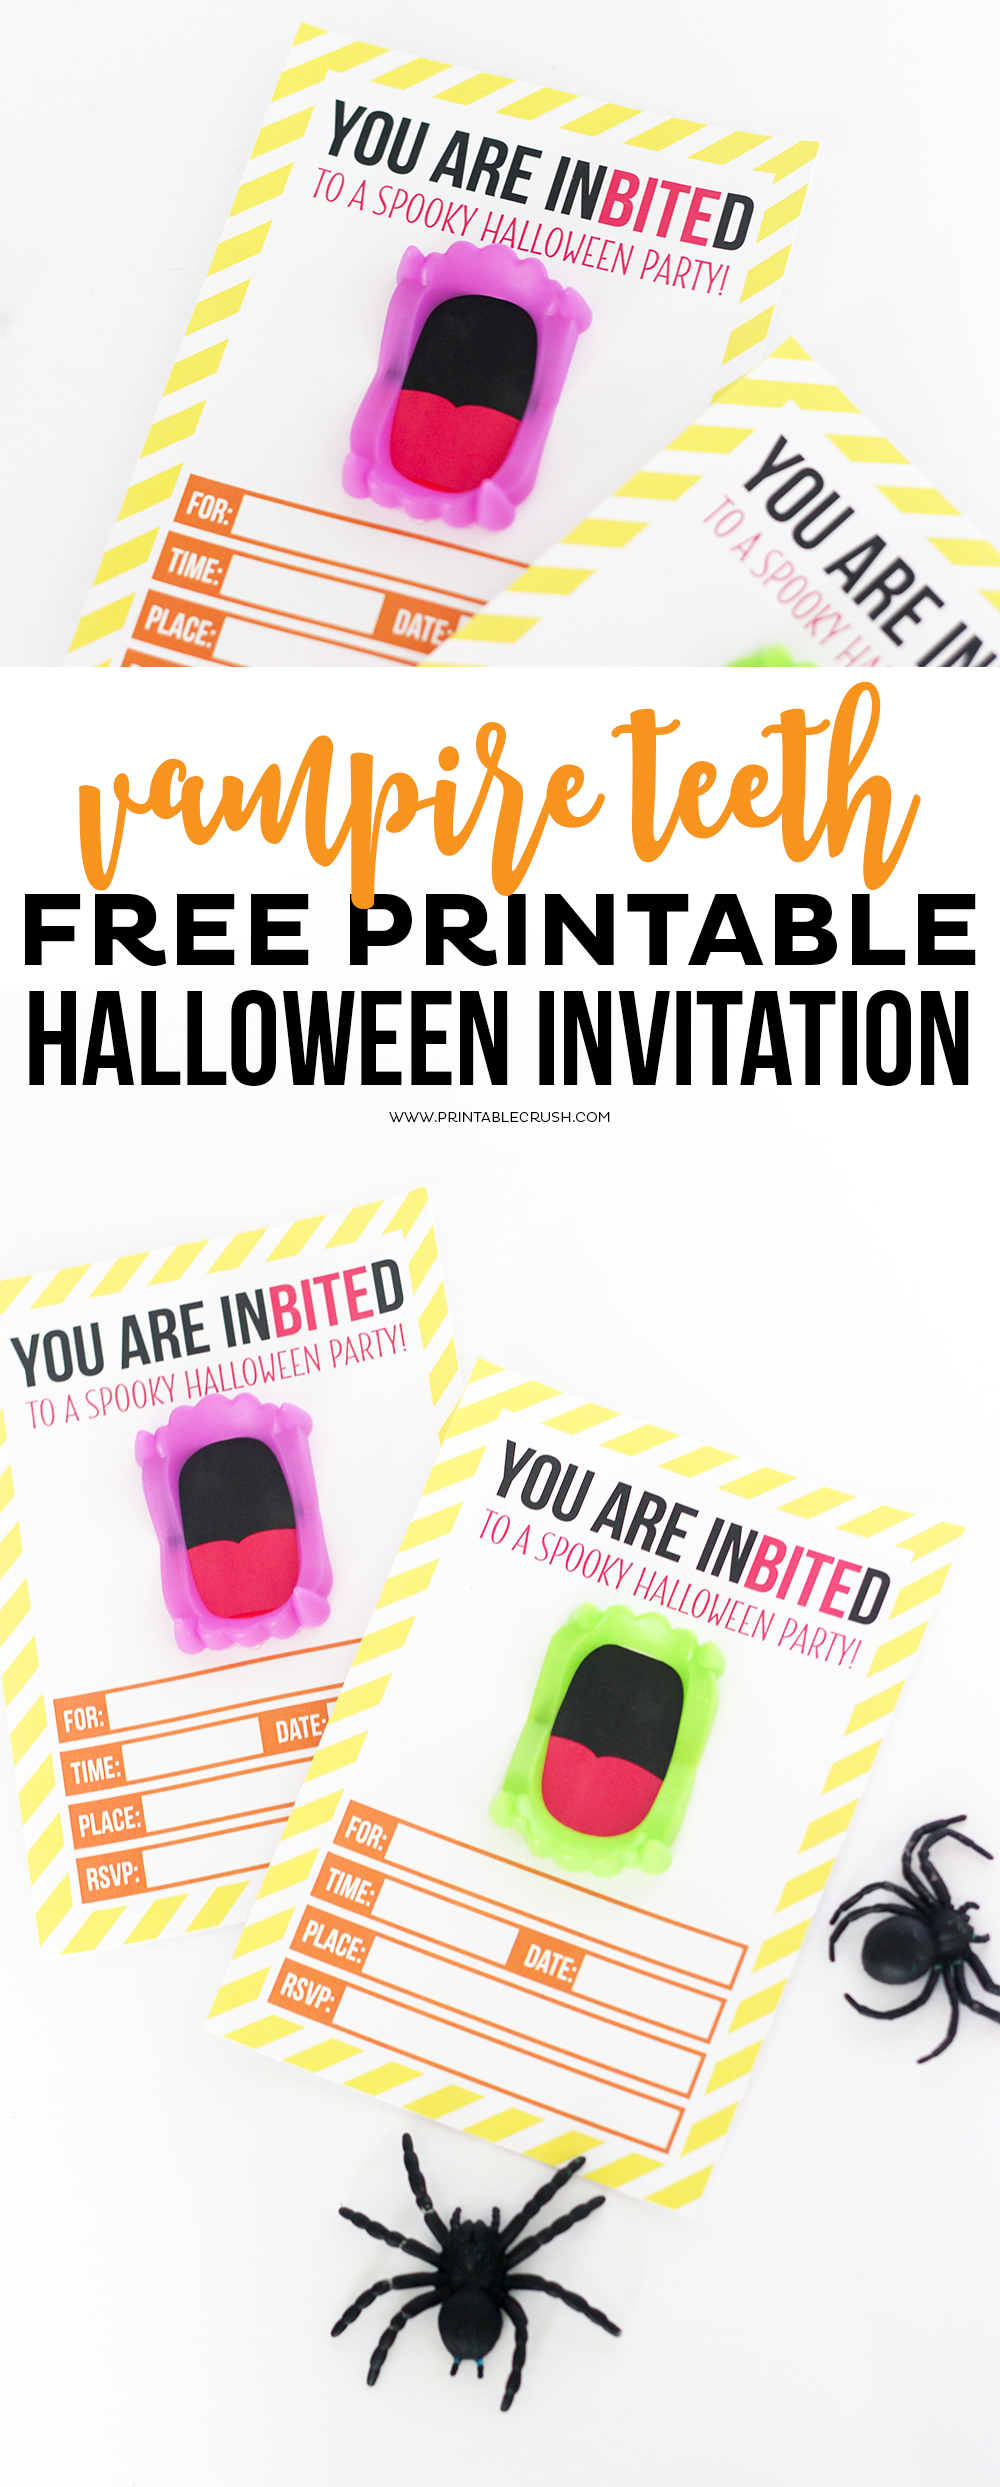 photograph regarding Halloween Invitation Printable titled Cost-free Printable Vampire Halloween Invitation - Printable Crush